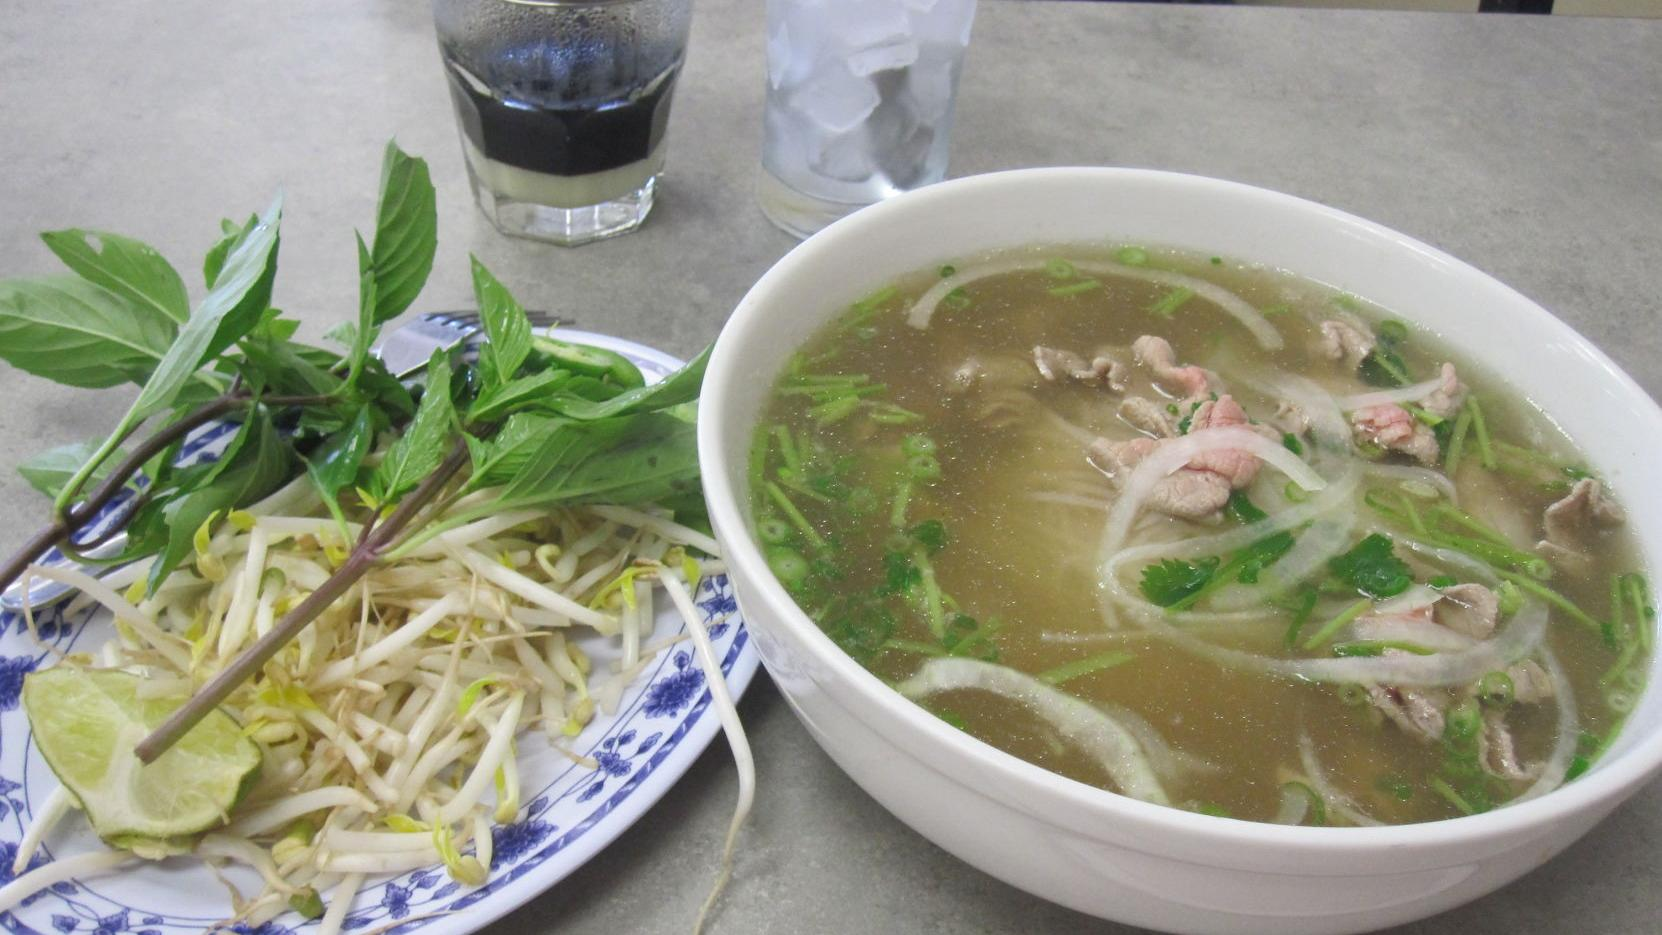 How Does Pho Measure Up Nutrition Wise Depends On These Factors And Your Sodium Intake Where Nola Eats Nola Com